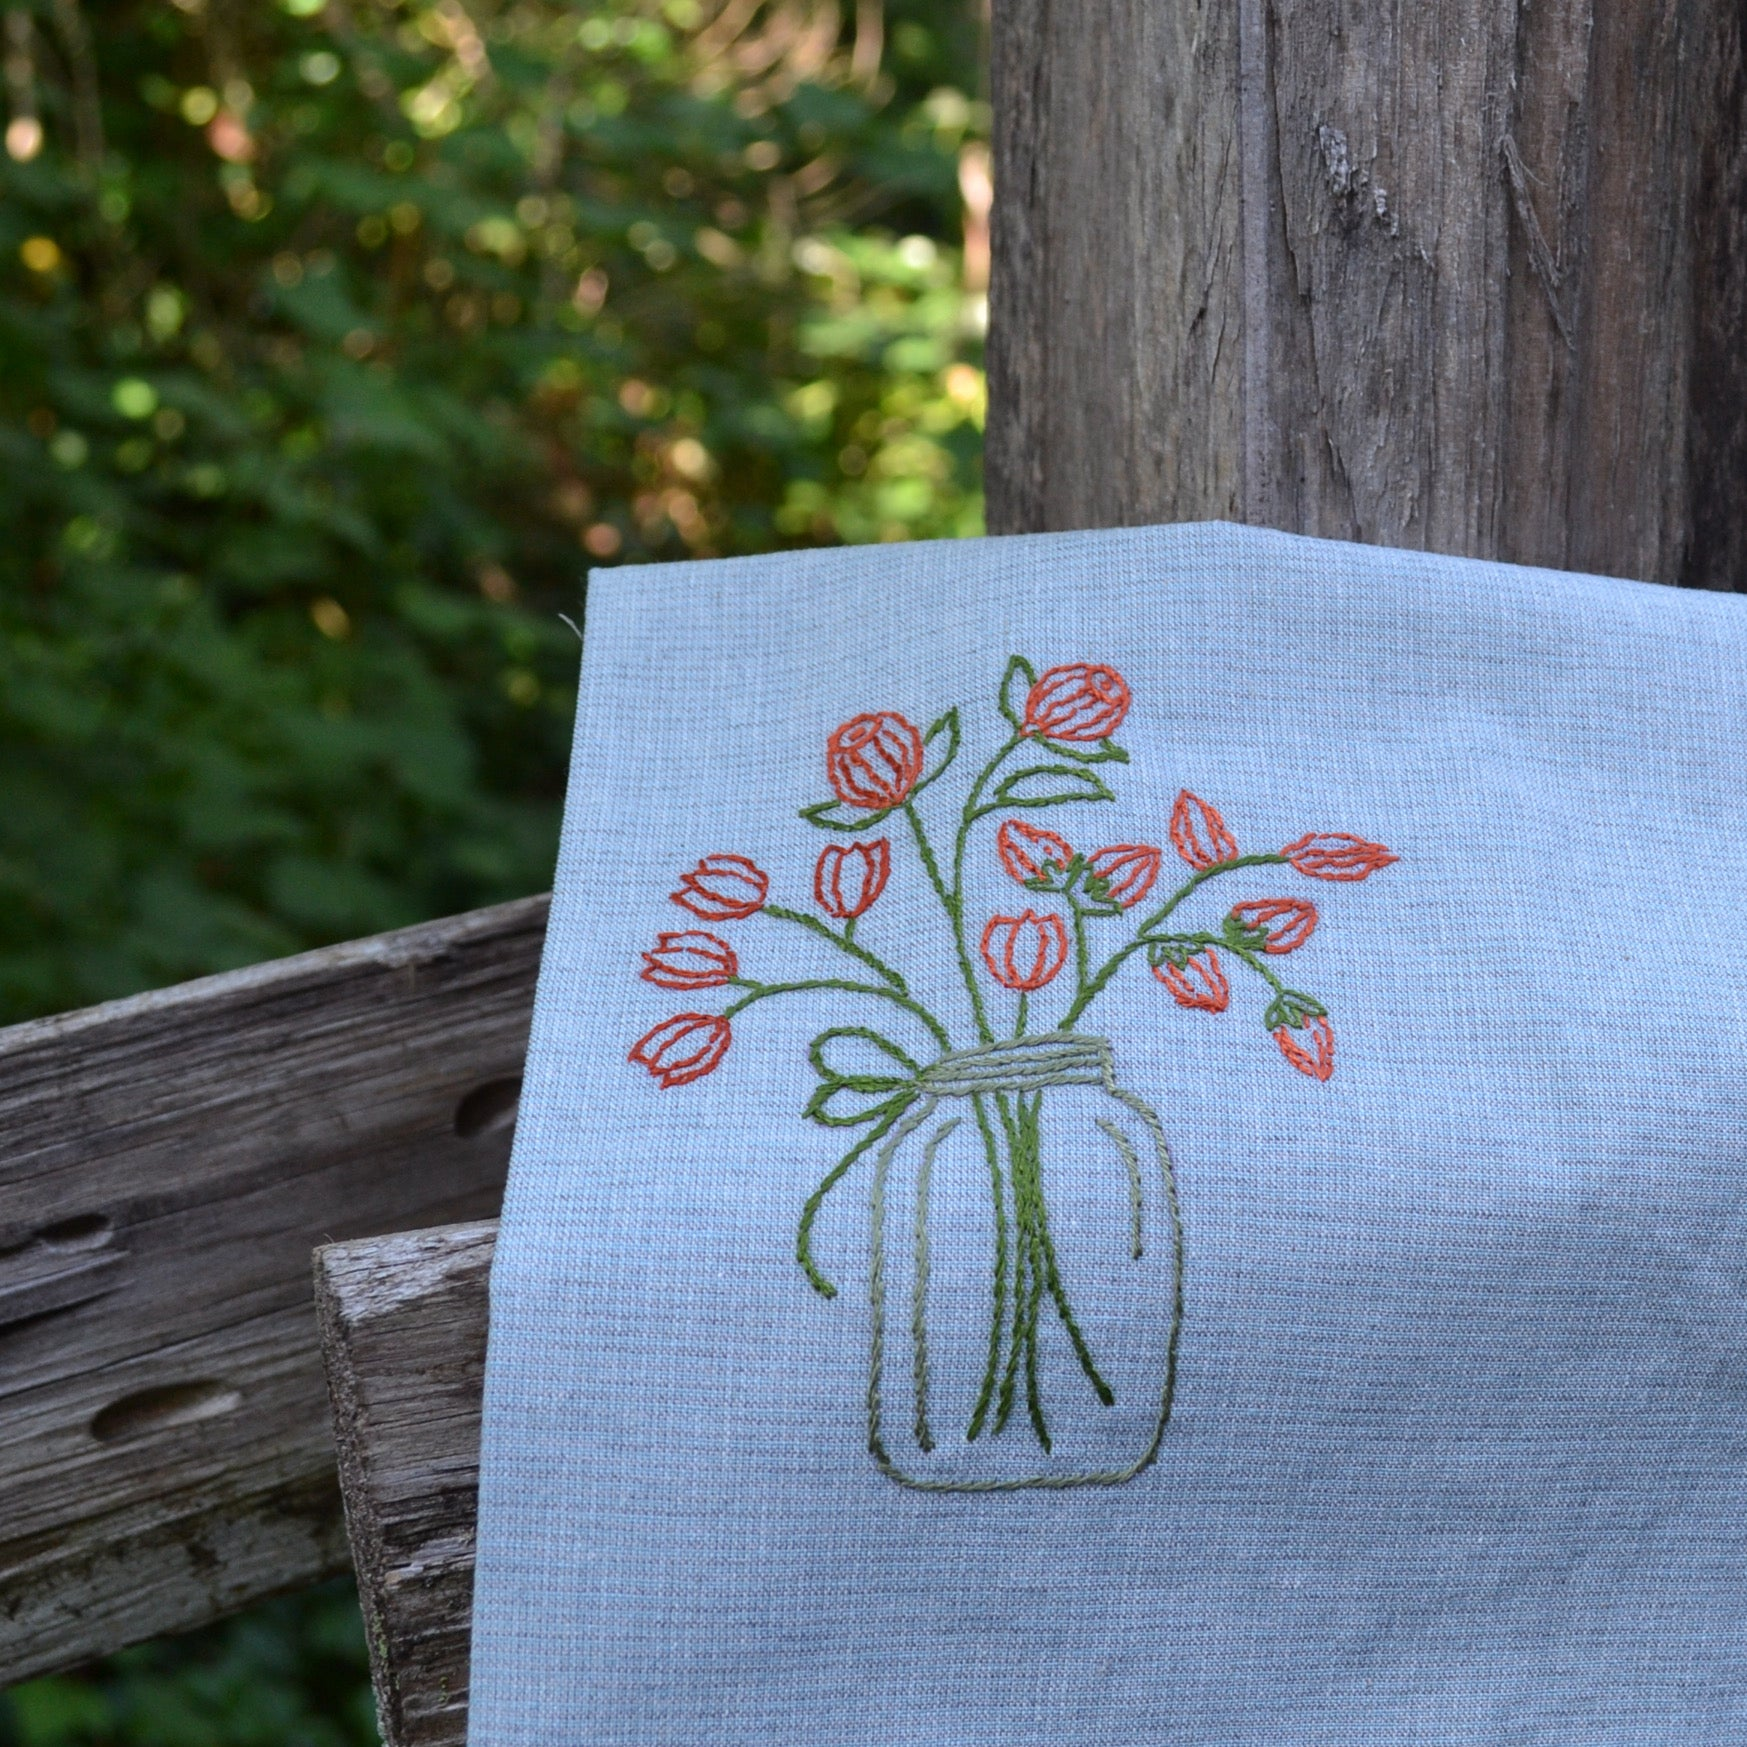 Hand stitching kitchen towel blanks